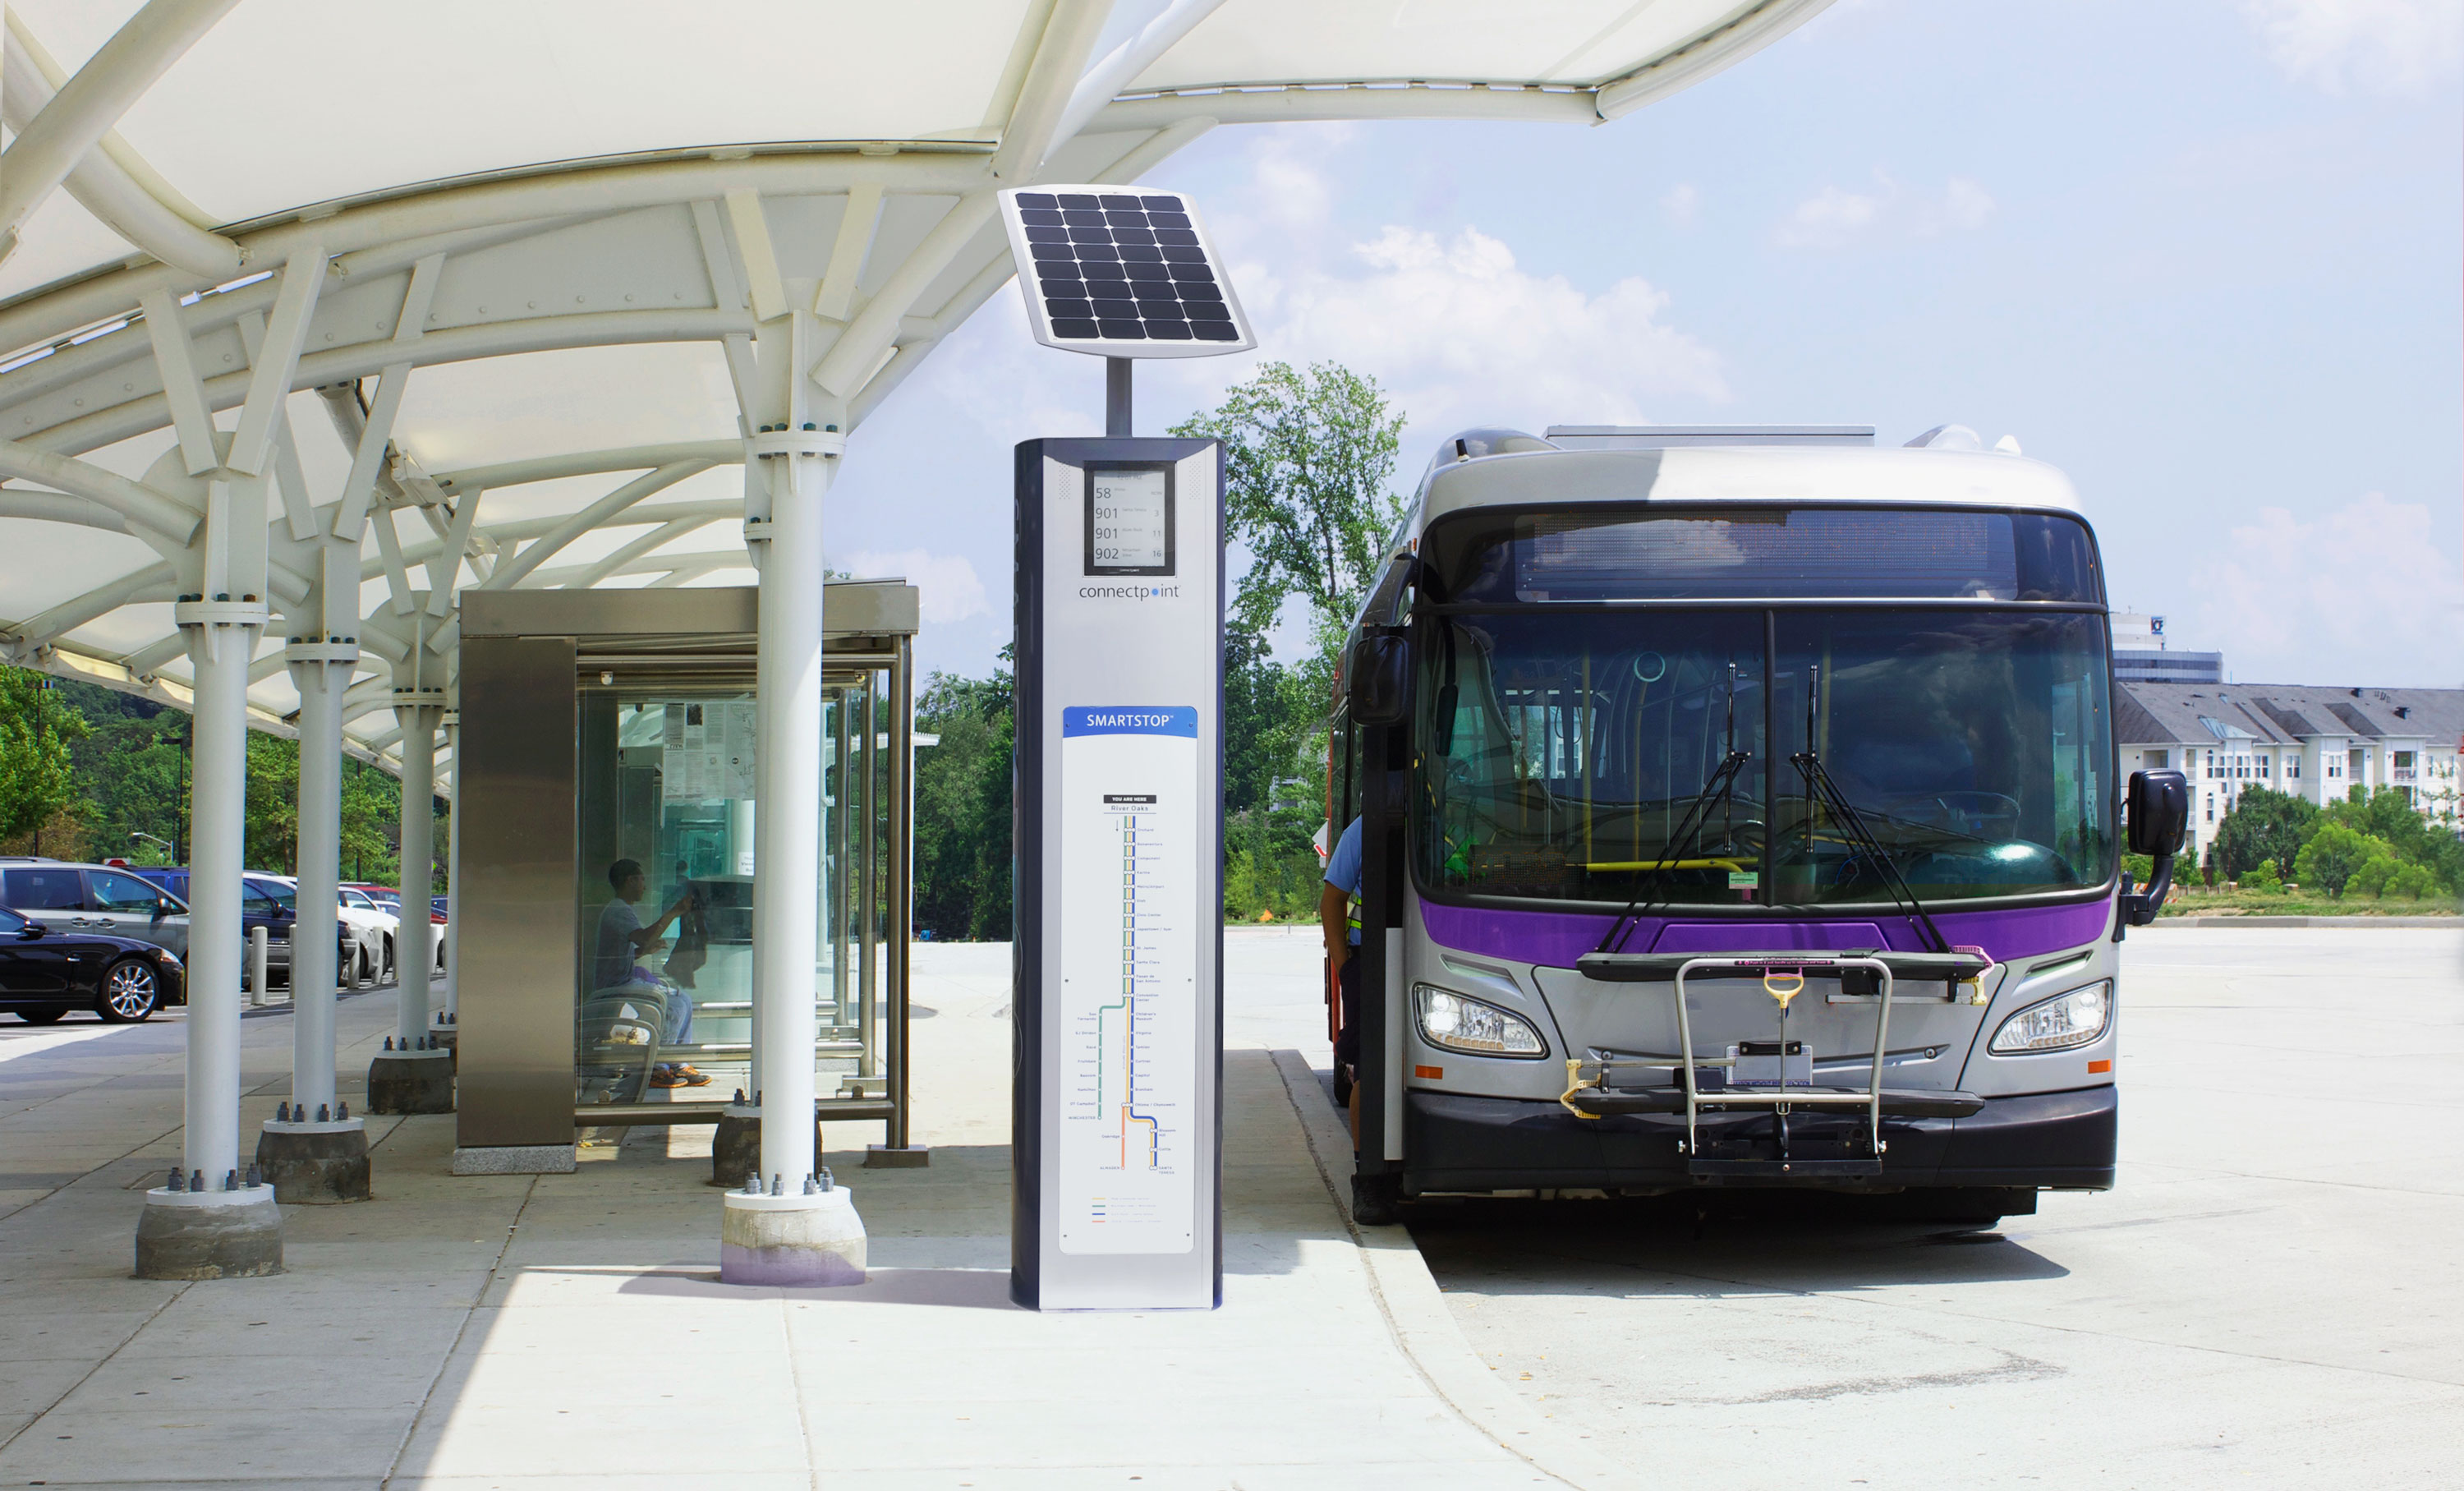 SmartStop in an outdoor transit center environment